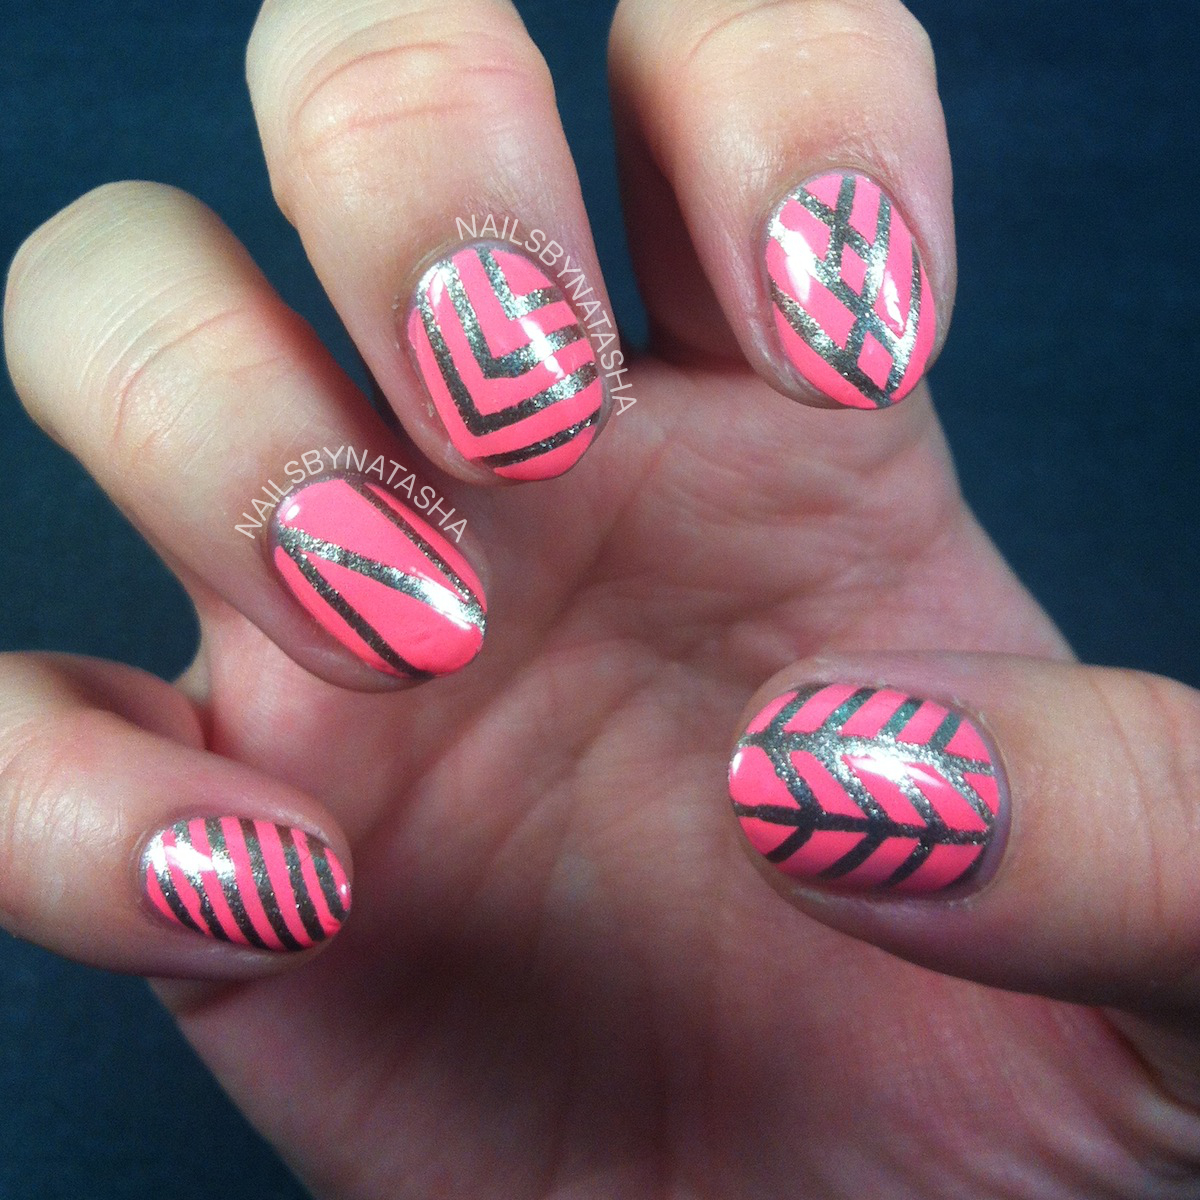 Nails By Natasha: First Striping Tape Designs